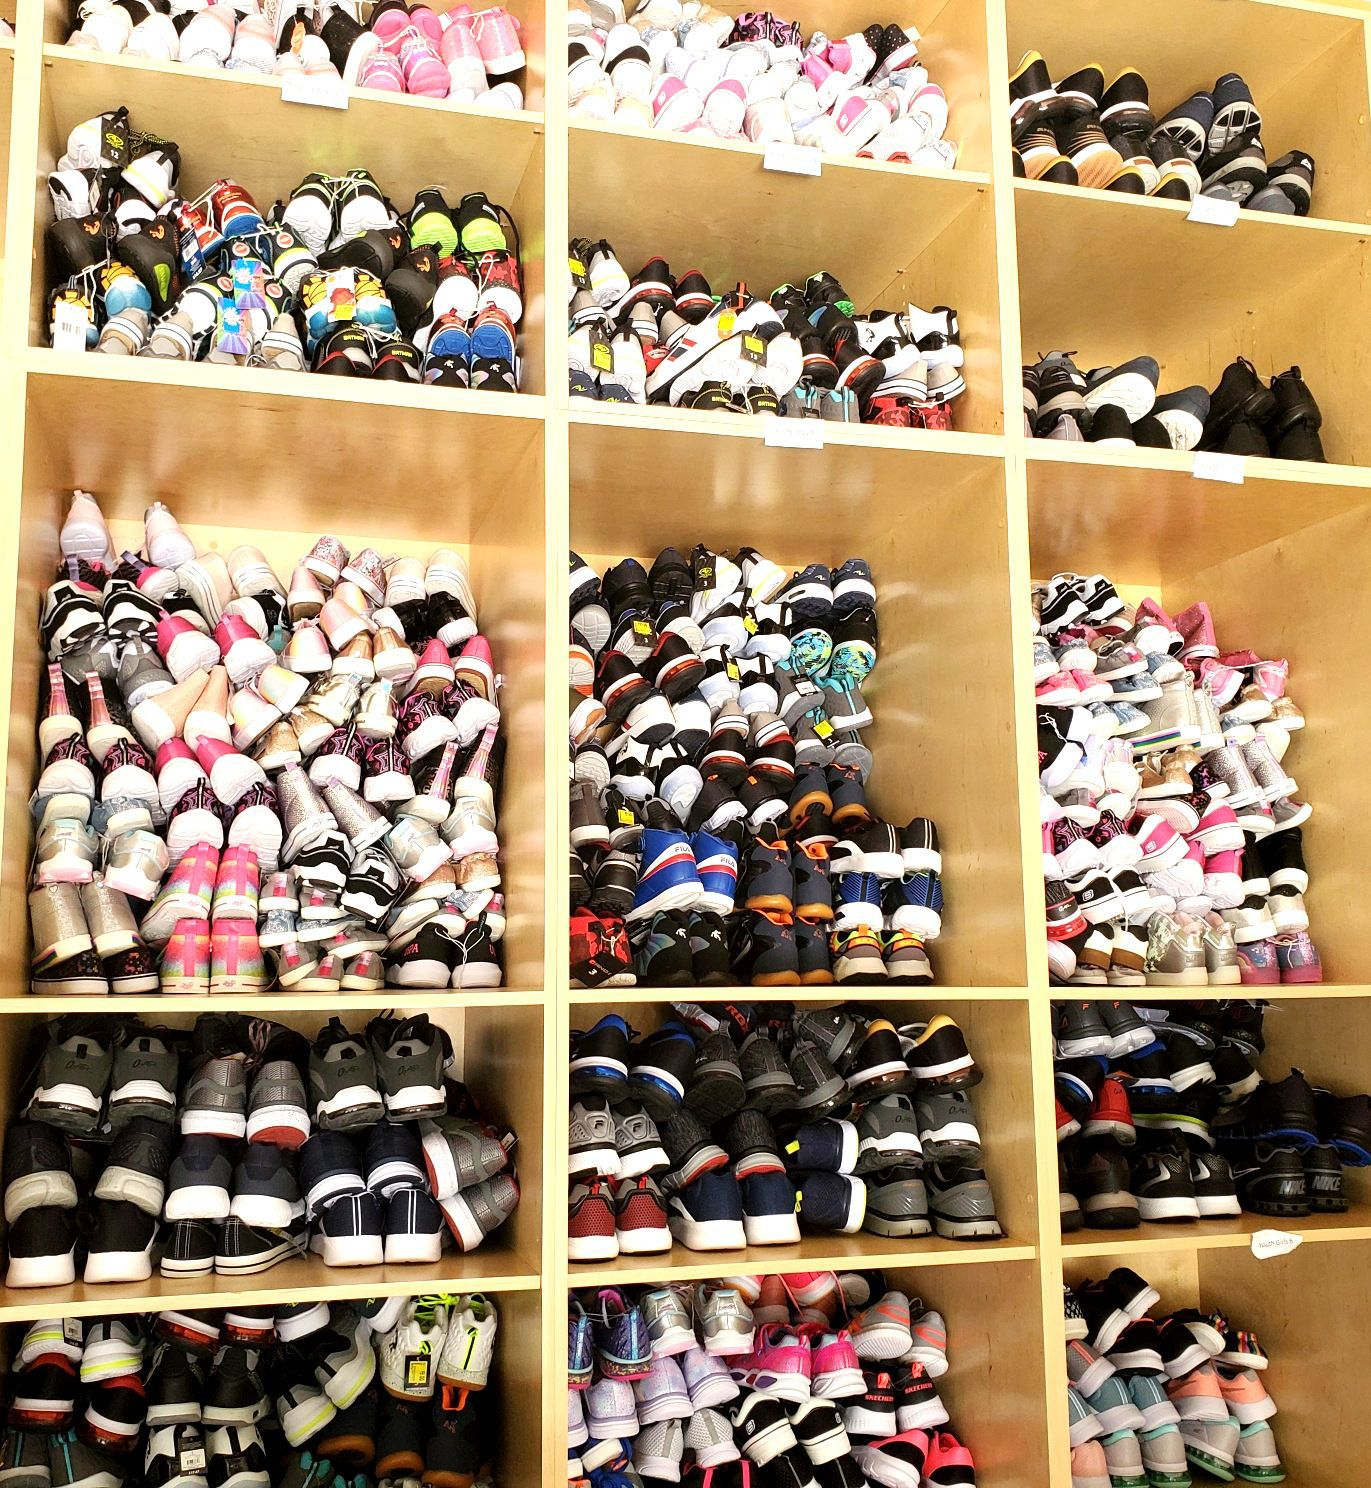 Shoes for Kids summer shoe drive to Charlotte County